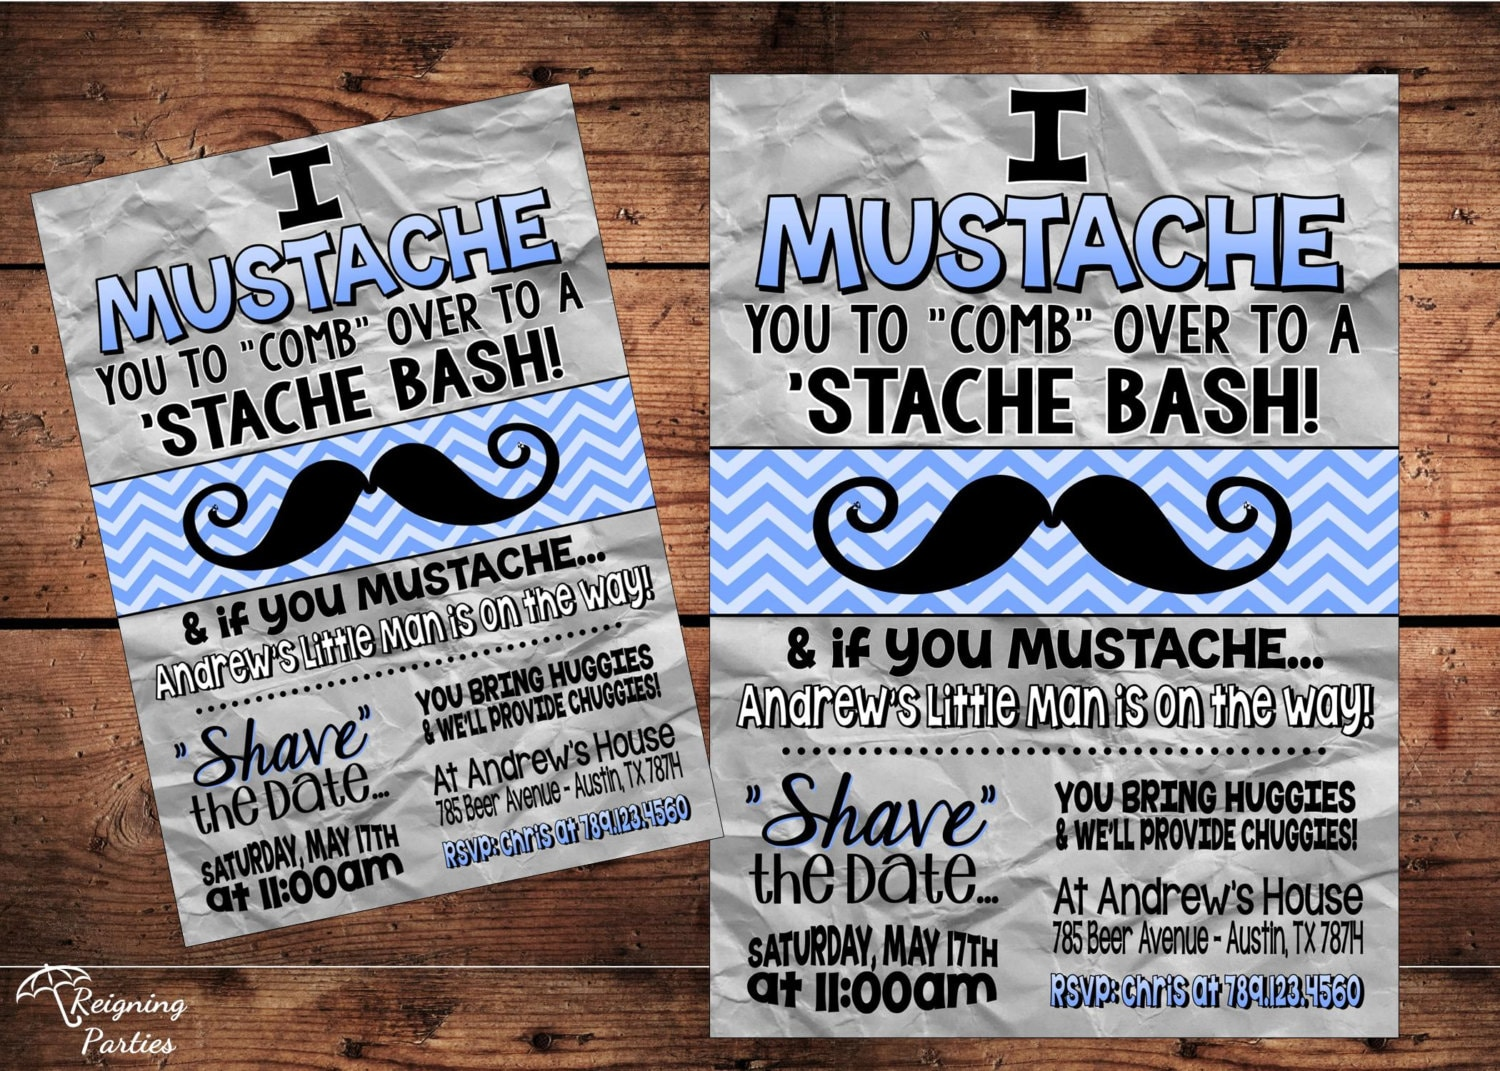 Mustache Bash Diaper Party Stash Bash Party Invitation